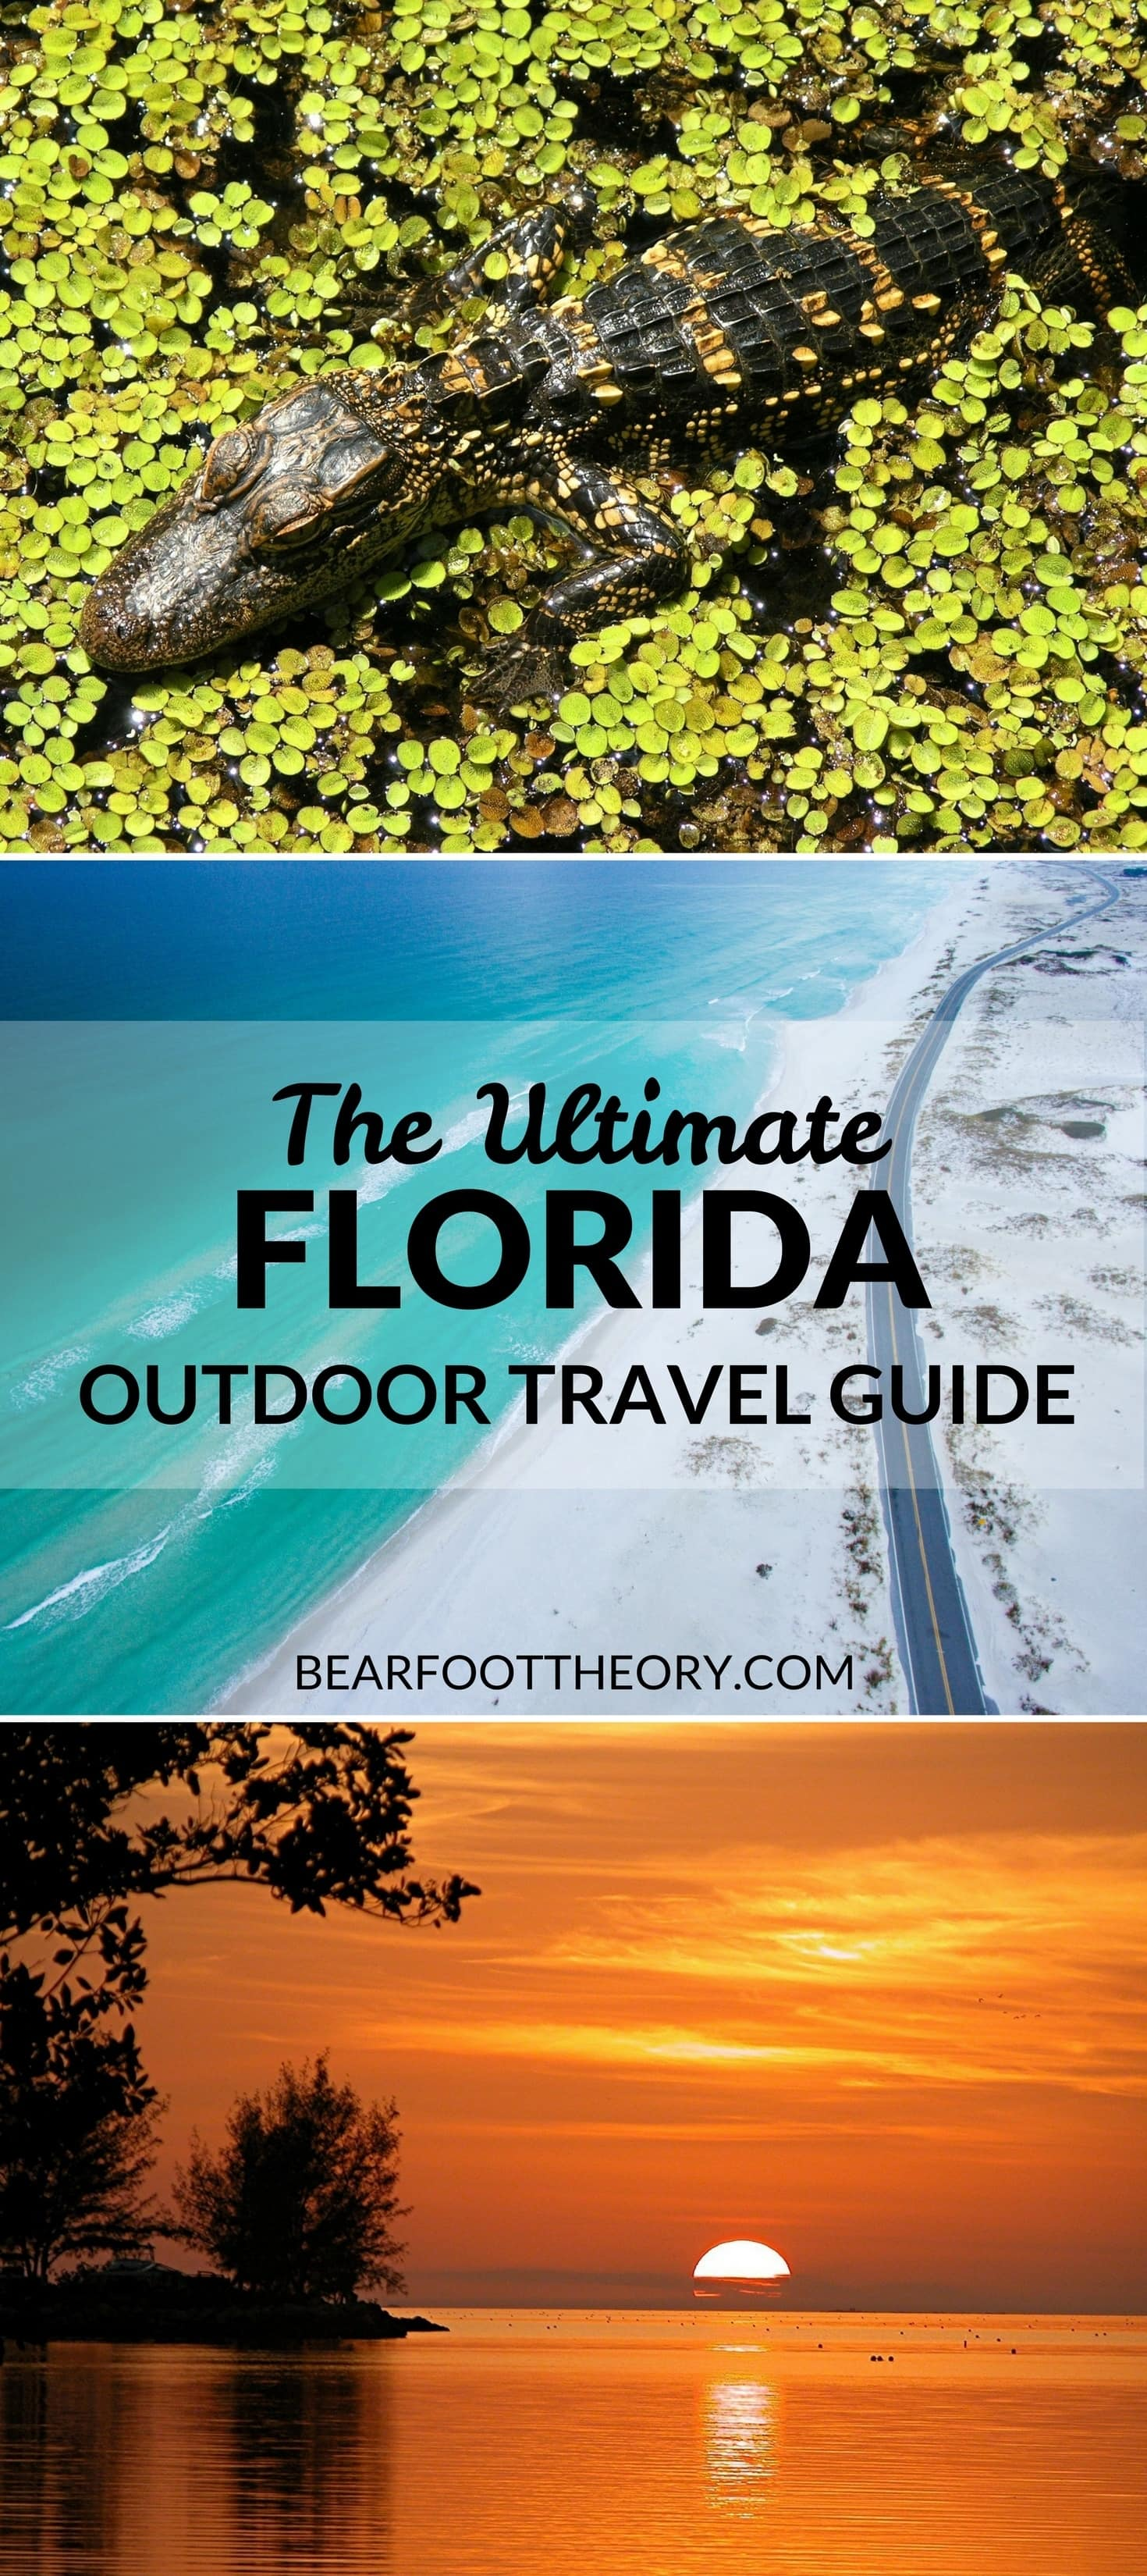 Plan an adventurous trip to Florida with our outdoor travel guide featuring the best outdoor activities, national parks & most popular Florida blog posts